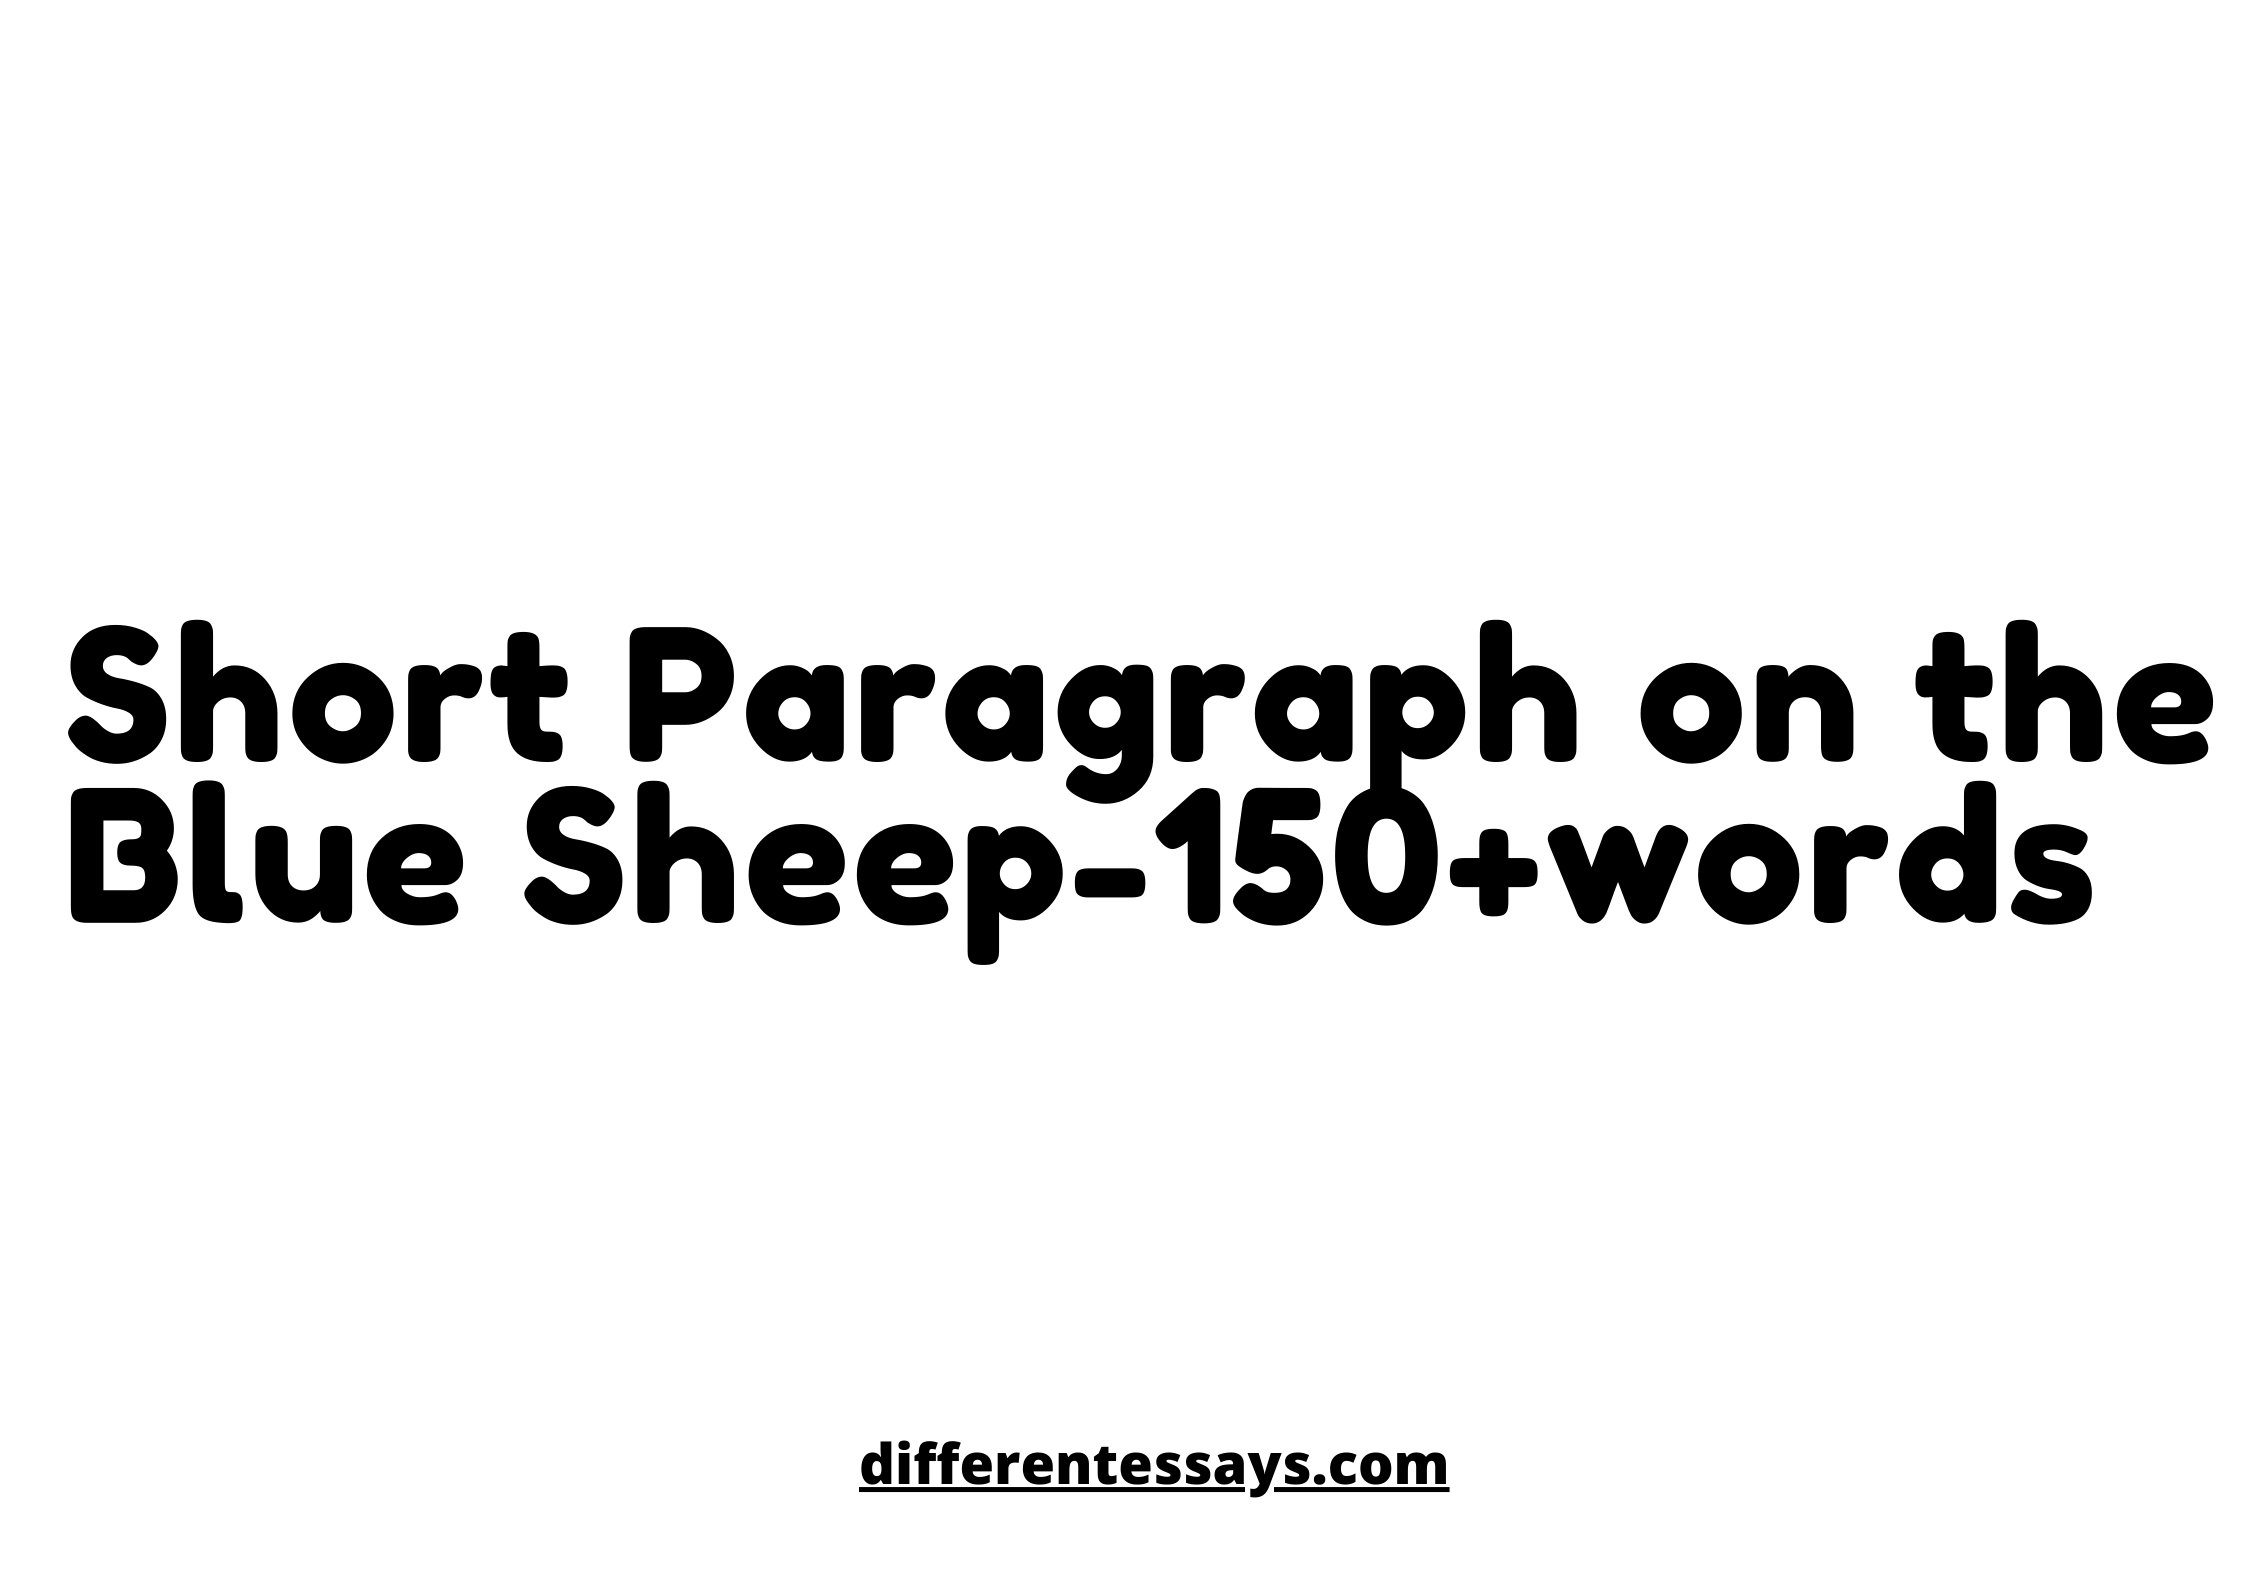 Short Paragraph on the Blue Sheep-150+words